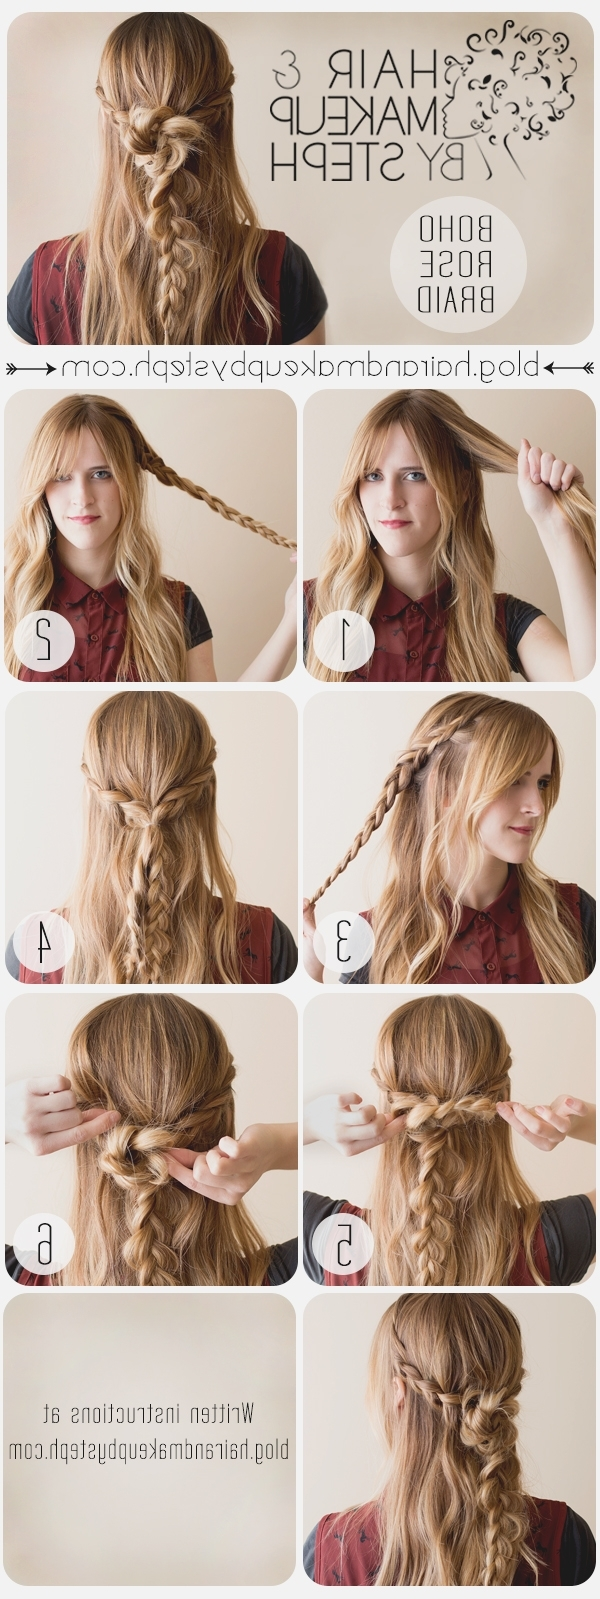 Recent Boho Braided Hairstyles With How To Make A Boho Braid: Boho Braided Hair Tutorials You Must Love (View 14 of 15)